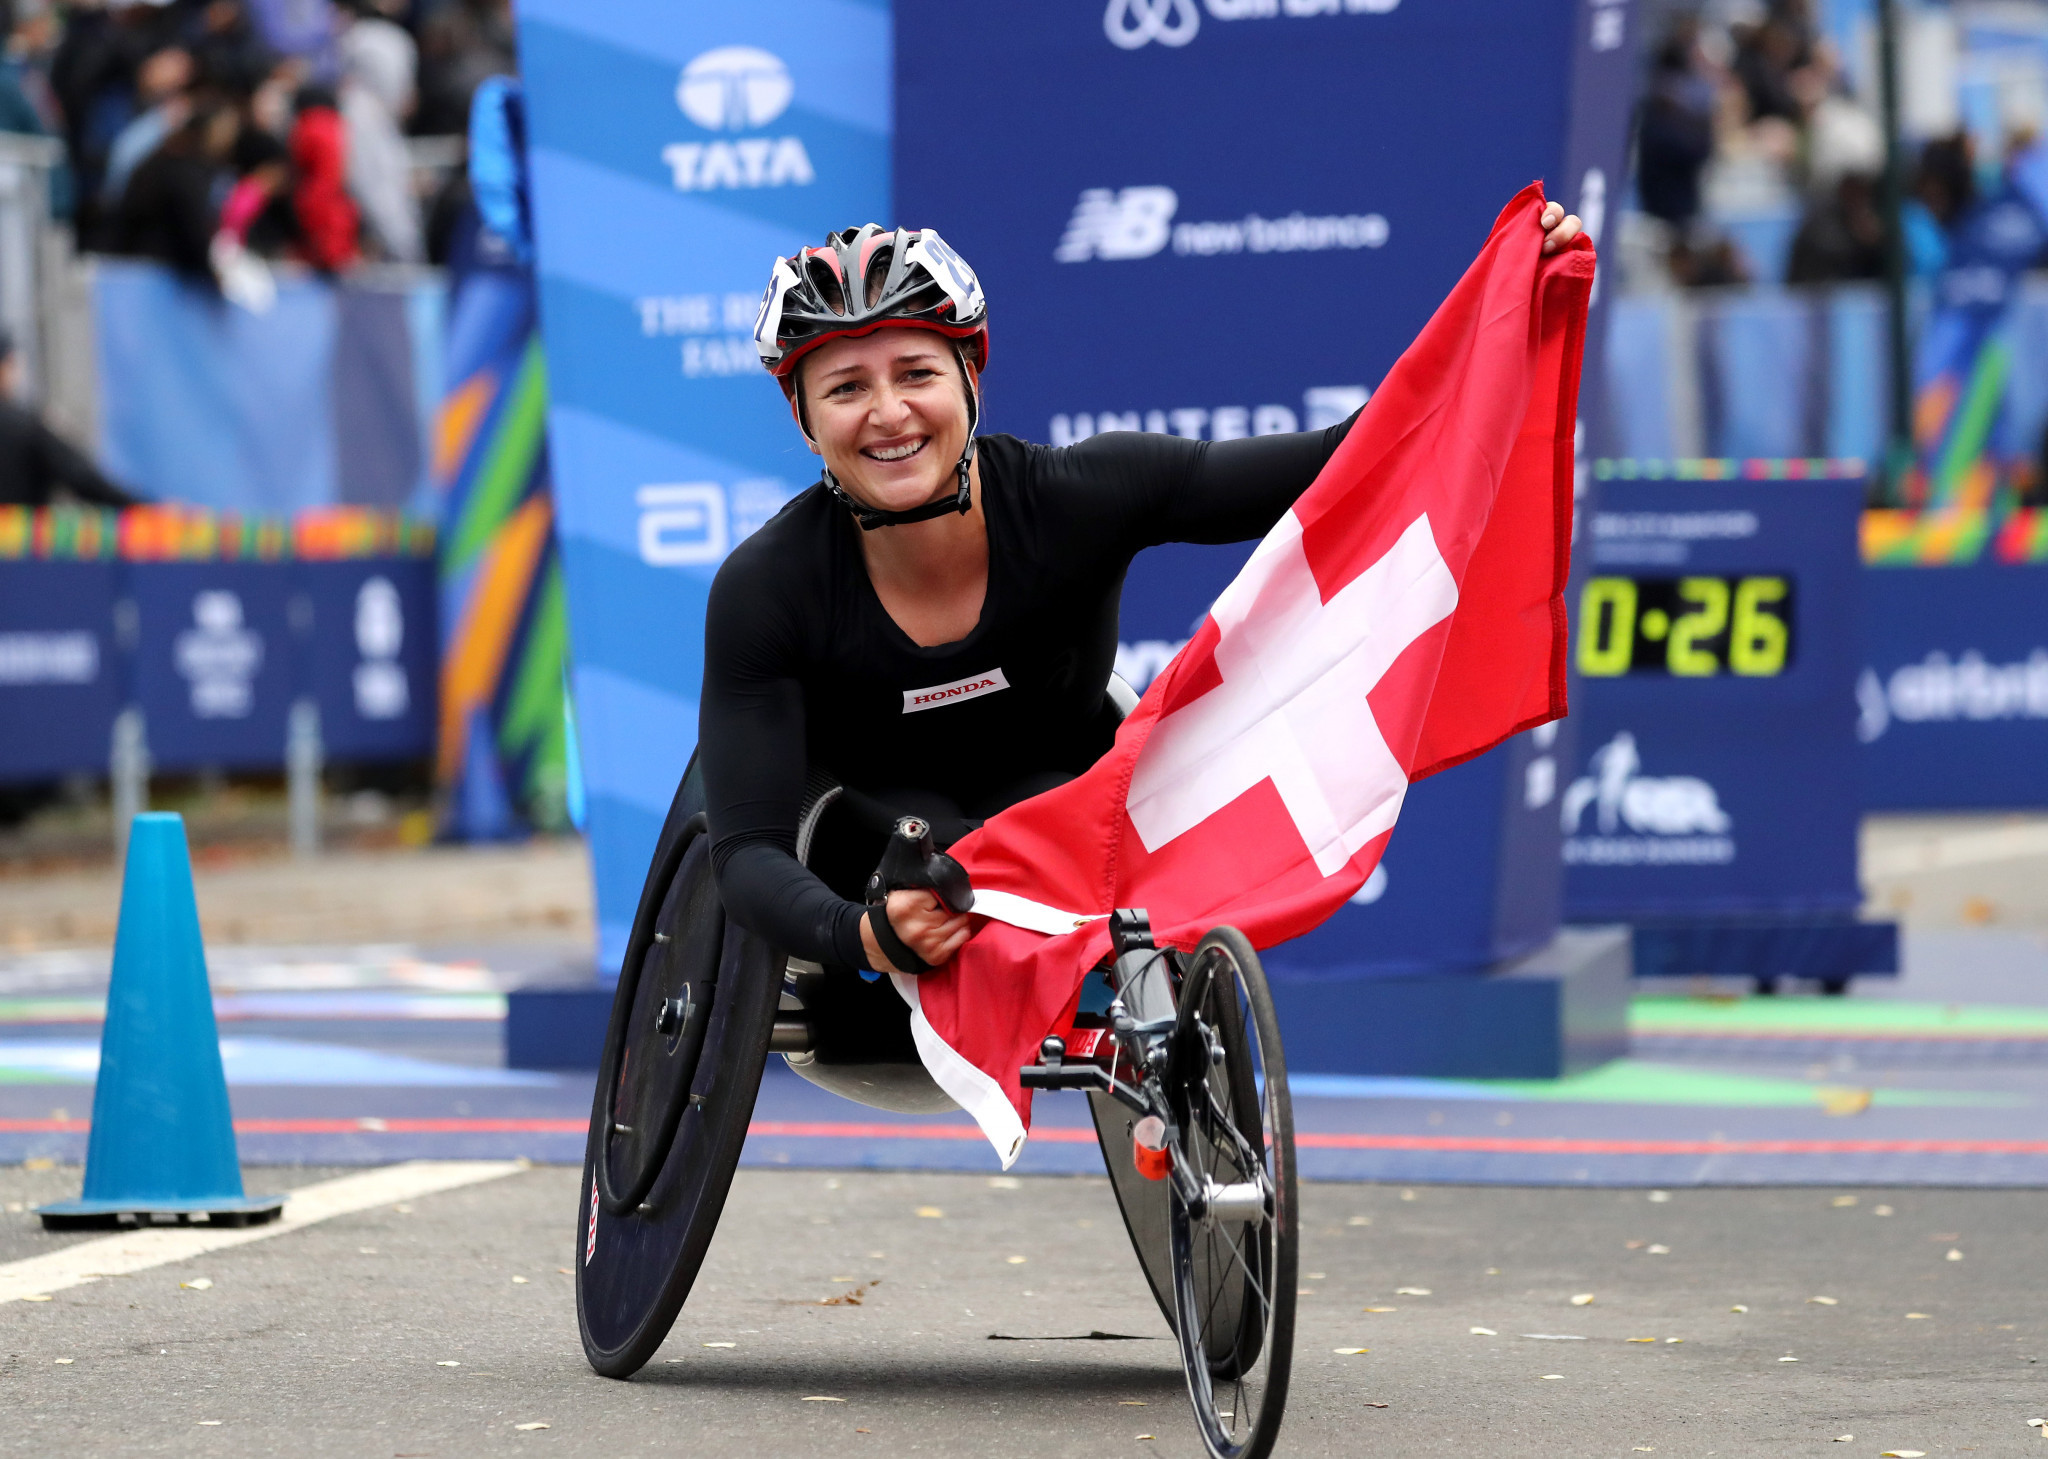 Clean sweep with Swiss double in New York City as pair race to victory in 2017 wheelchair marathon